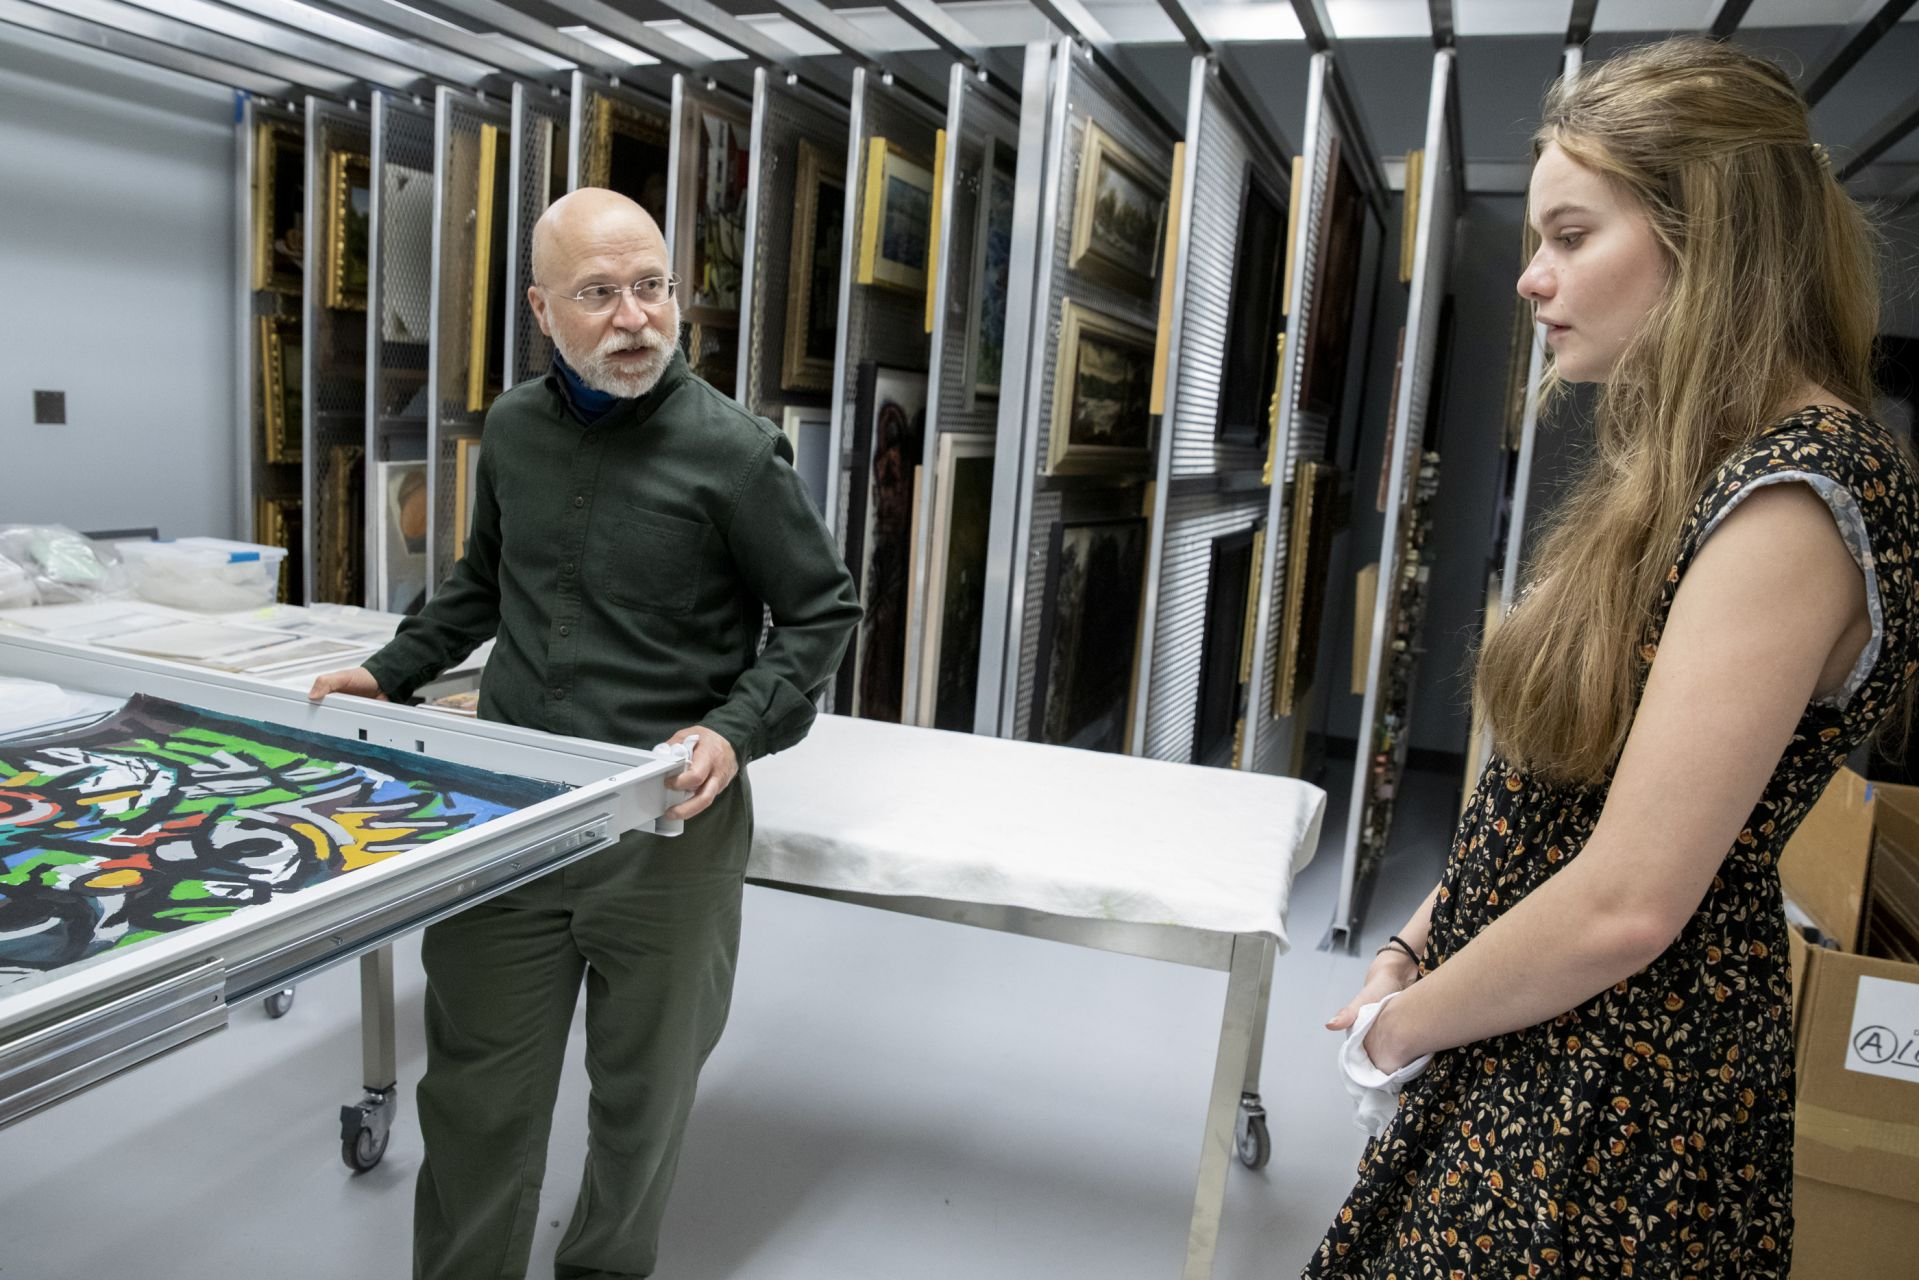 Olin Arts Center The museum's educational intern will learn how to maintain art. Will hopefully take place in the big room where the museum's thousands of items are kept